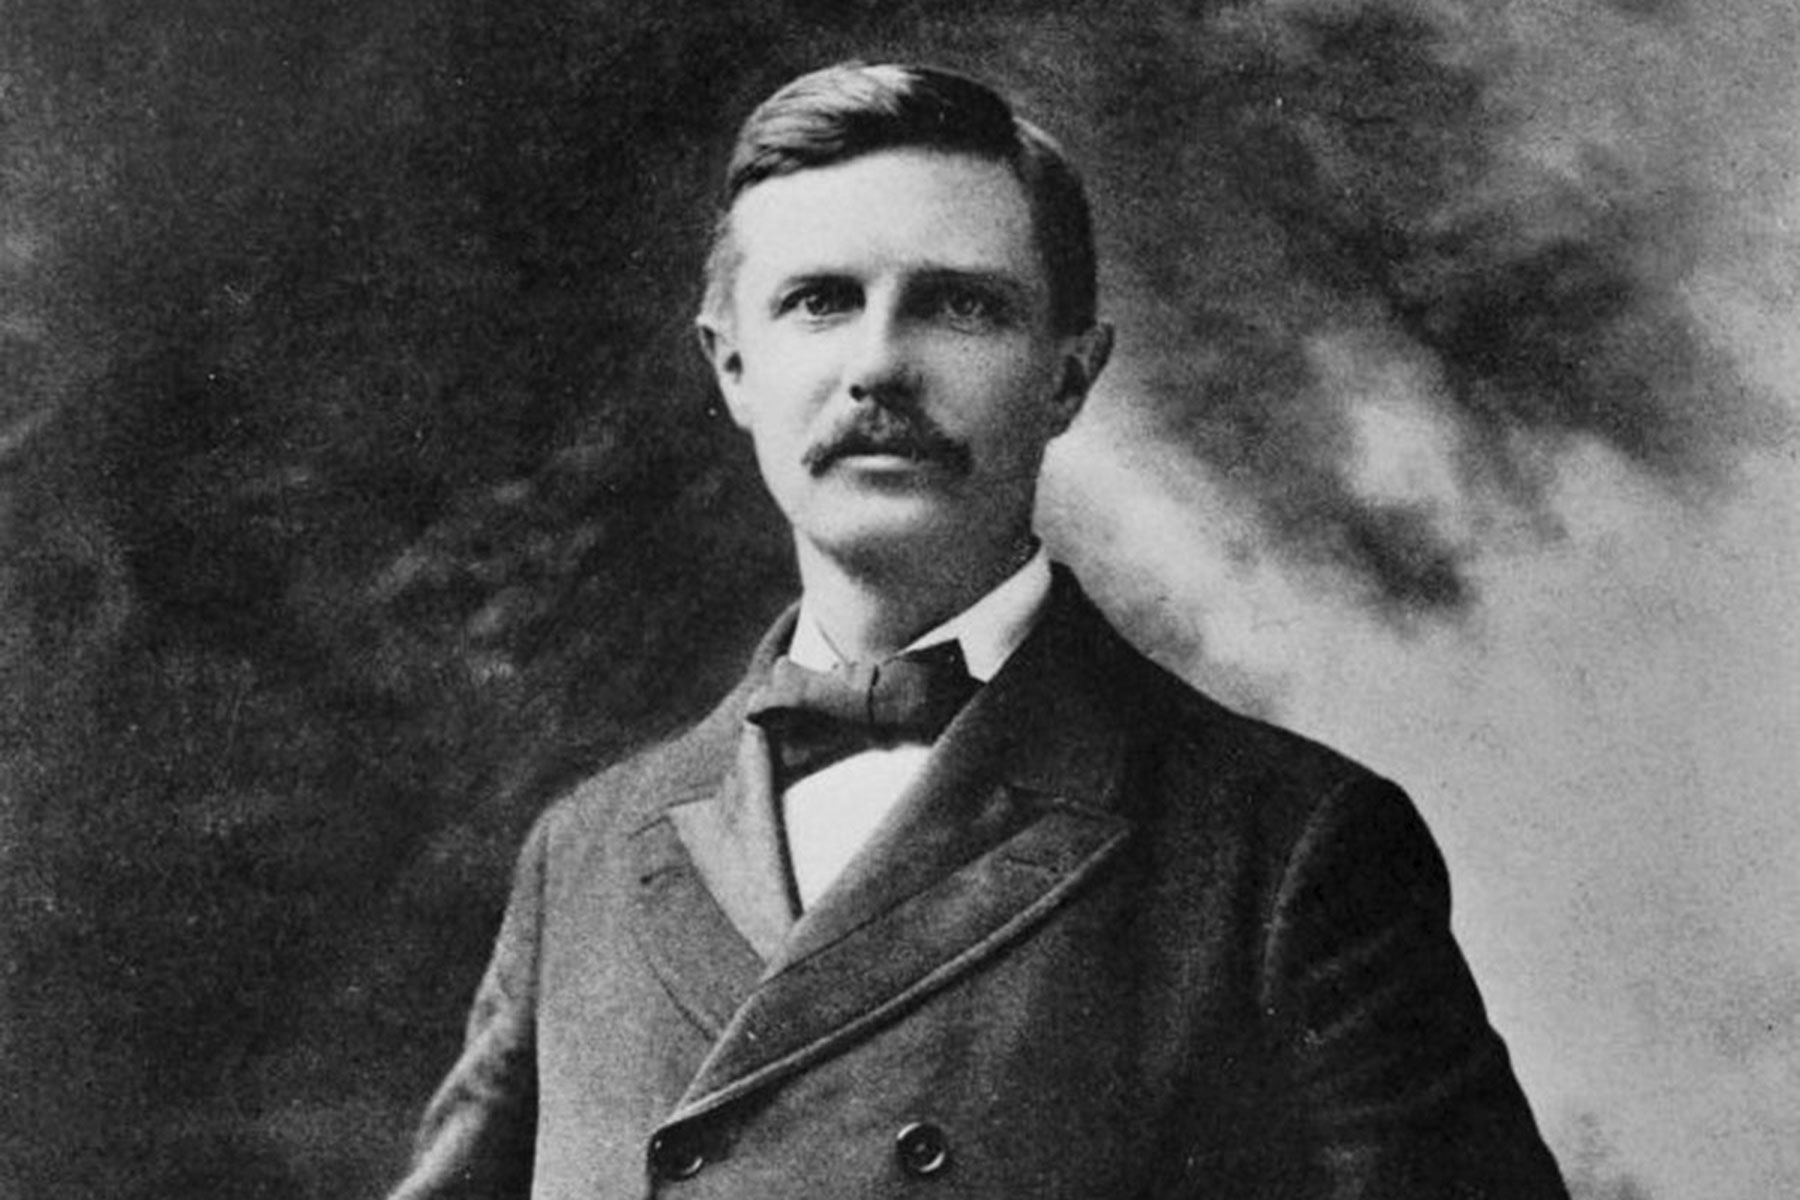 frederick turner jackson frontier thesis Actually, the republicans need to step back a century to 1900, when teddy roosevelt's progressivism and frederick jackson turner's frontier thesis dominated gop thinking they thought large in.